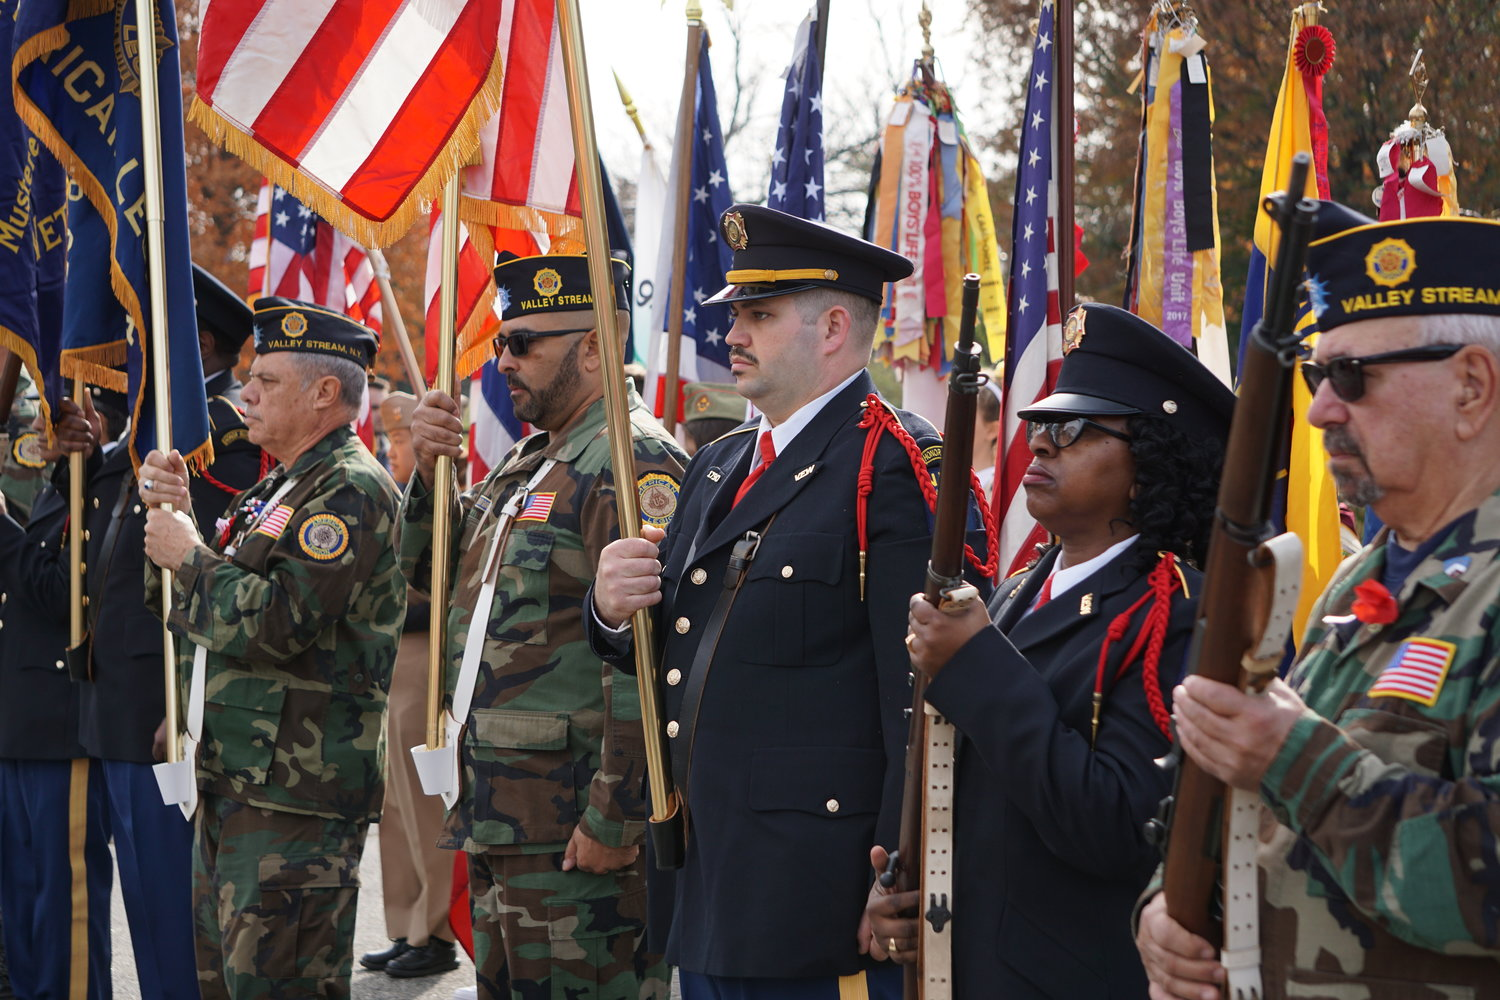 Valley Stream held its Veterans Day ceremony on the Village Green.